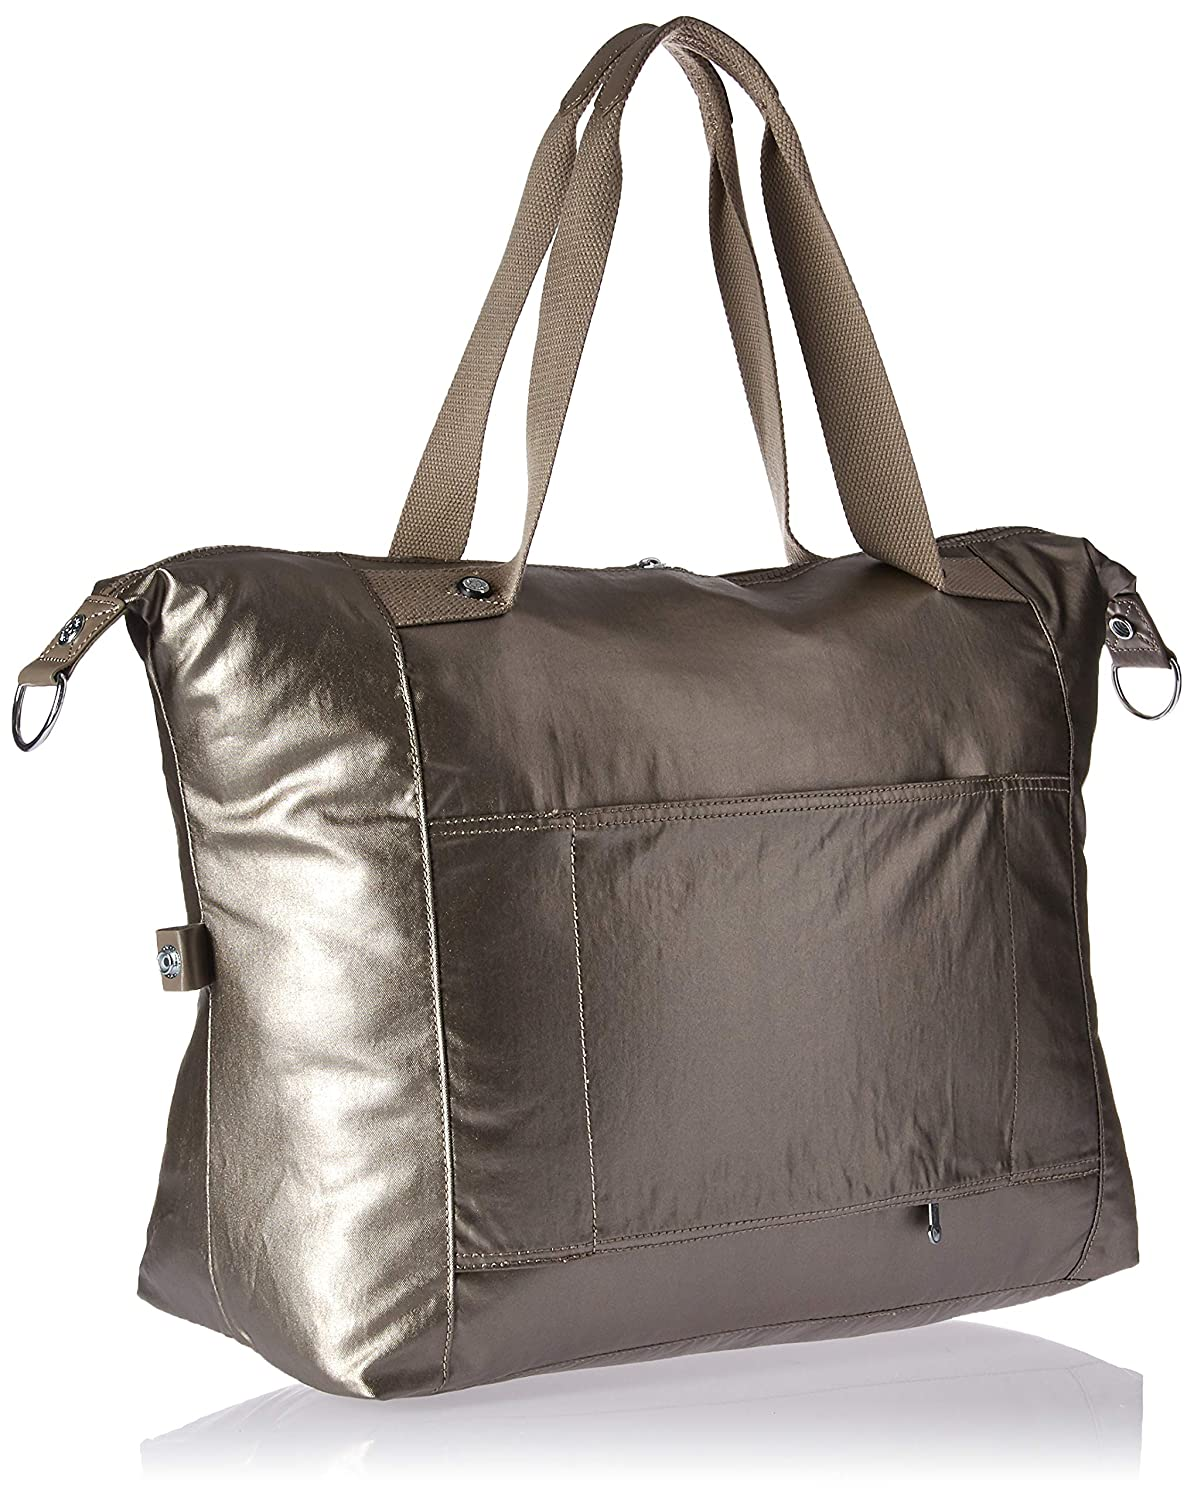 Kipling Carton Travel Tote, Metallic Pewter